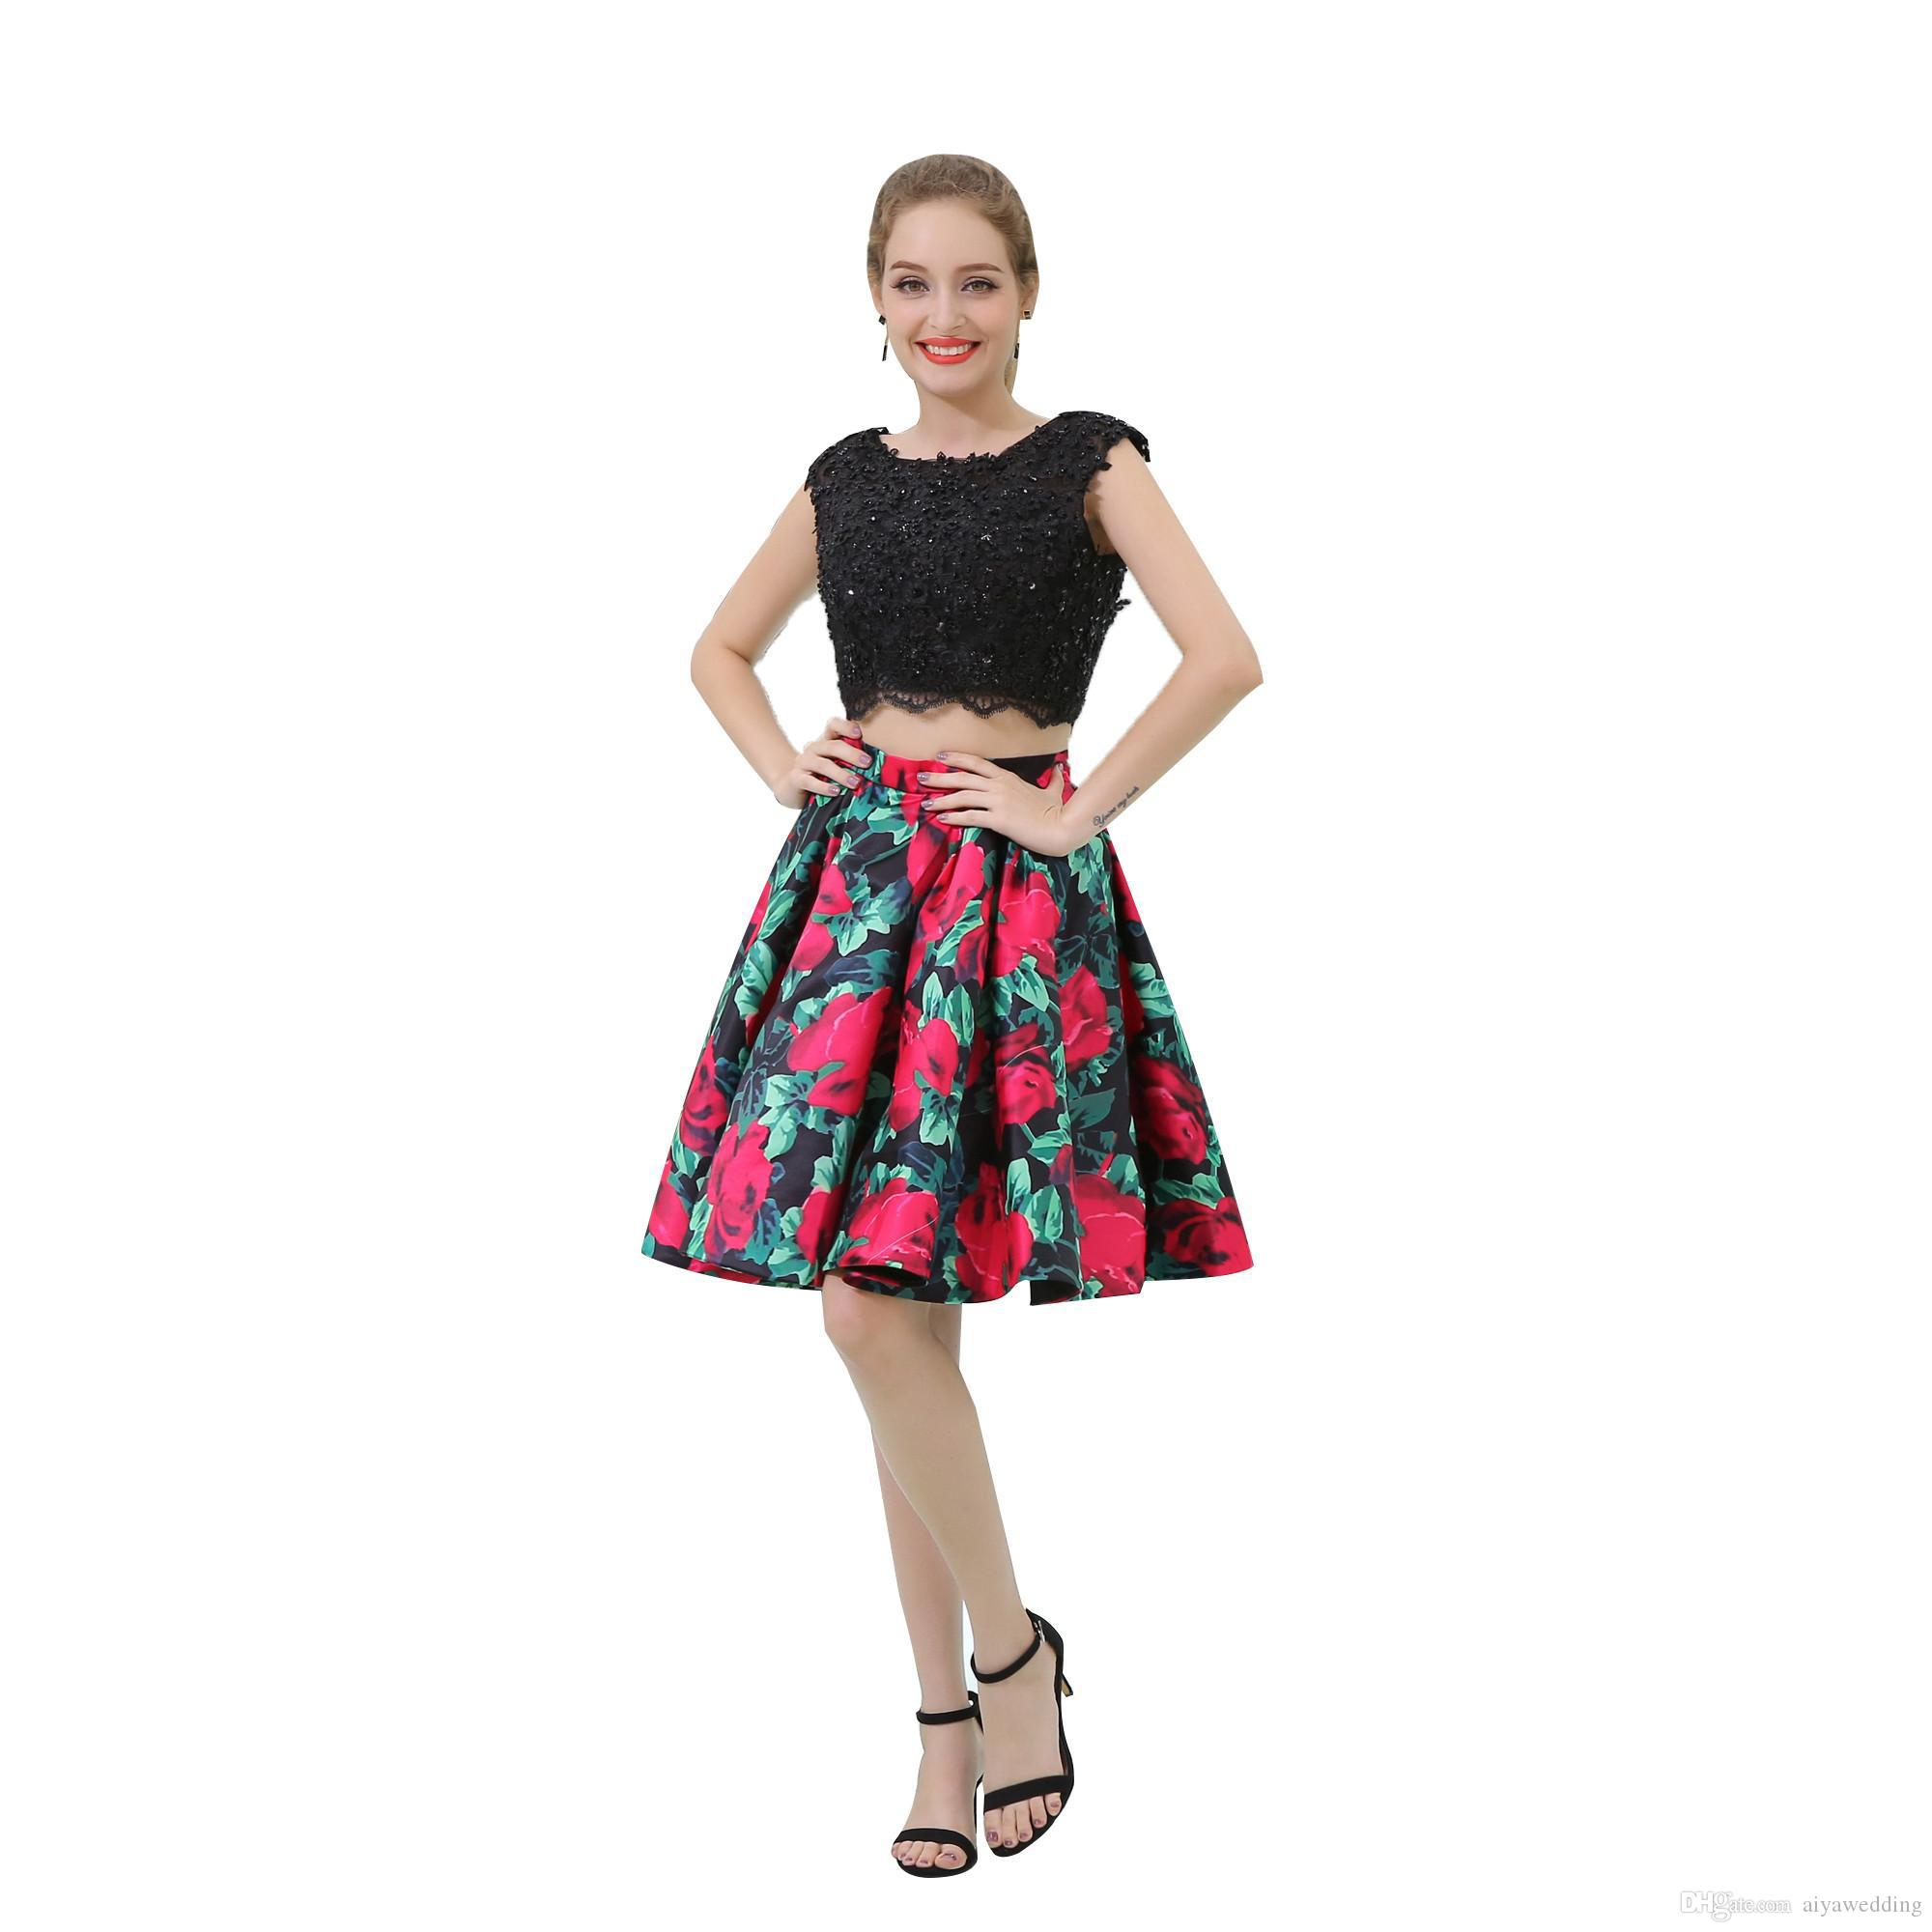 2020 Two Pieces Prom Dresses Jewel Sheer Neck With Lace Beaded Homecoming Dresses Printed Flower Short Evening Party Gowns